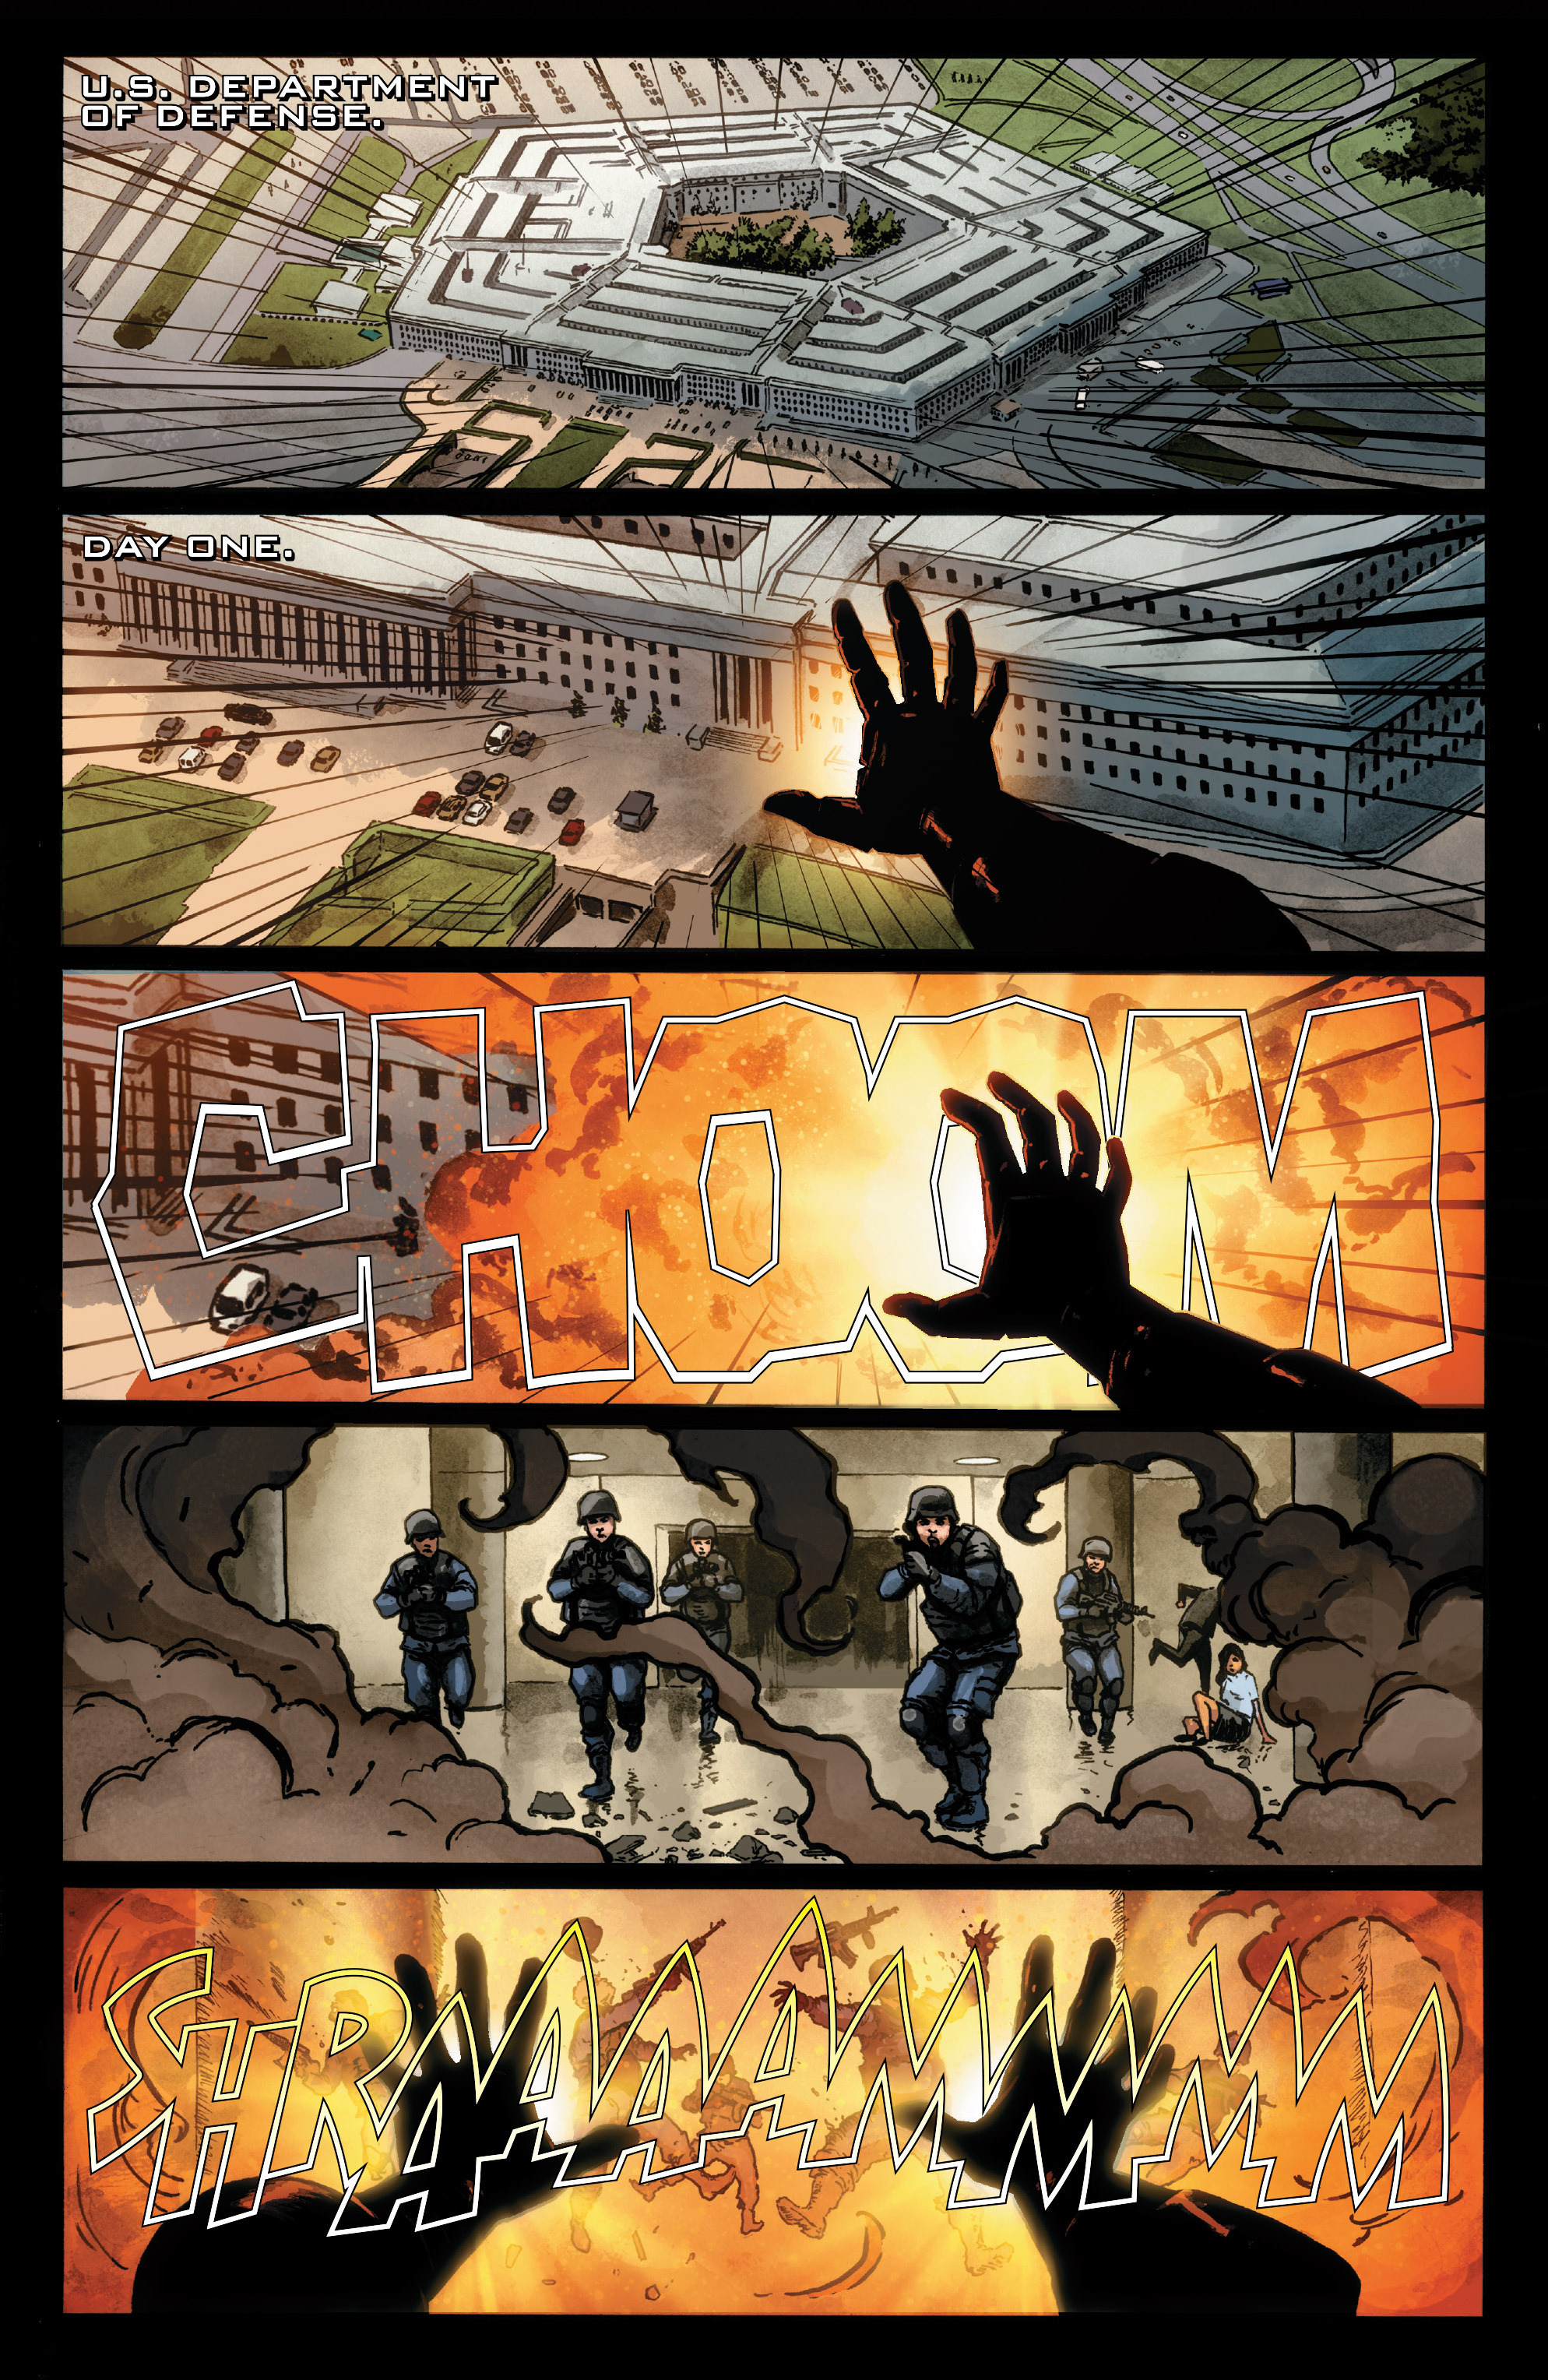 Read online Agents of S.H.I.E.L.D. comic -  Issue #1 - 2